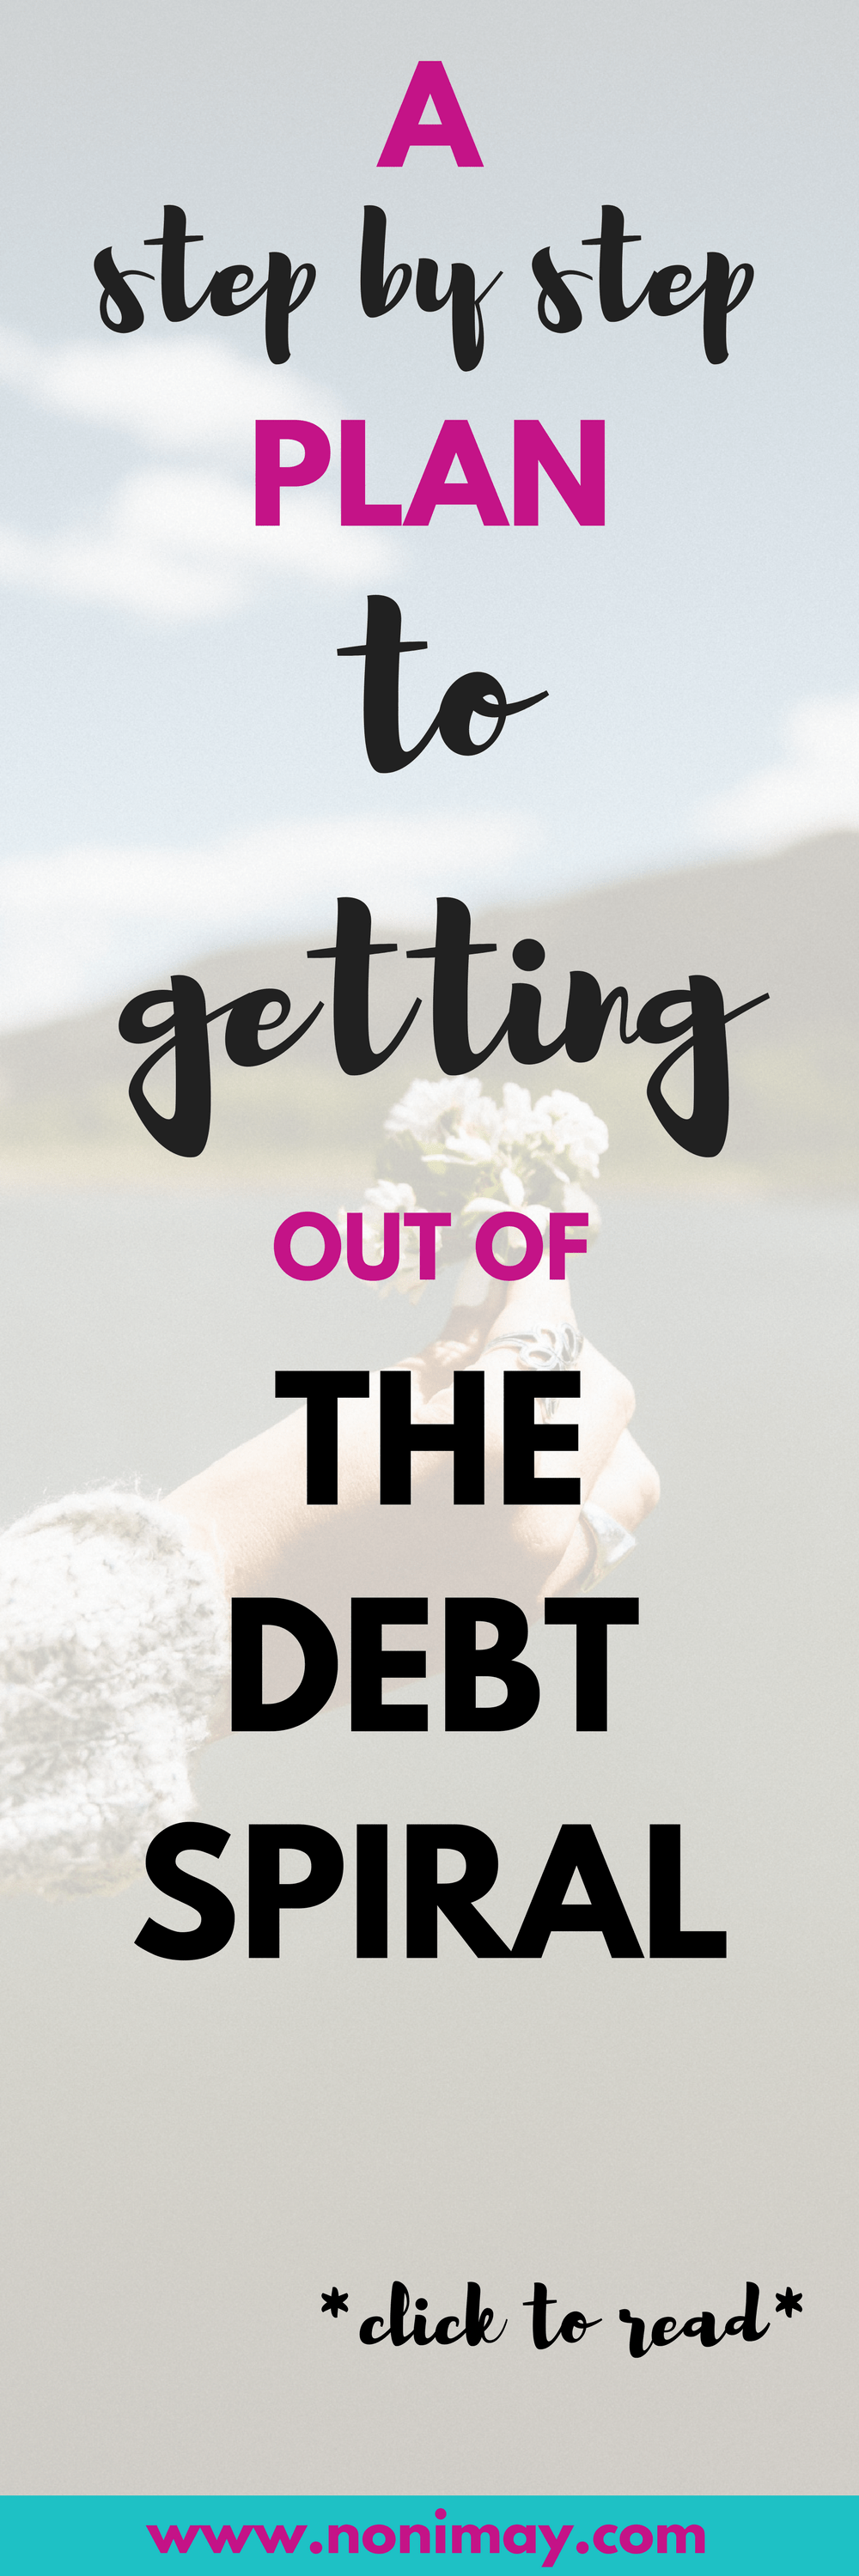 A step by step plan to getting out of the debt spiral